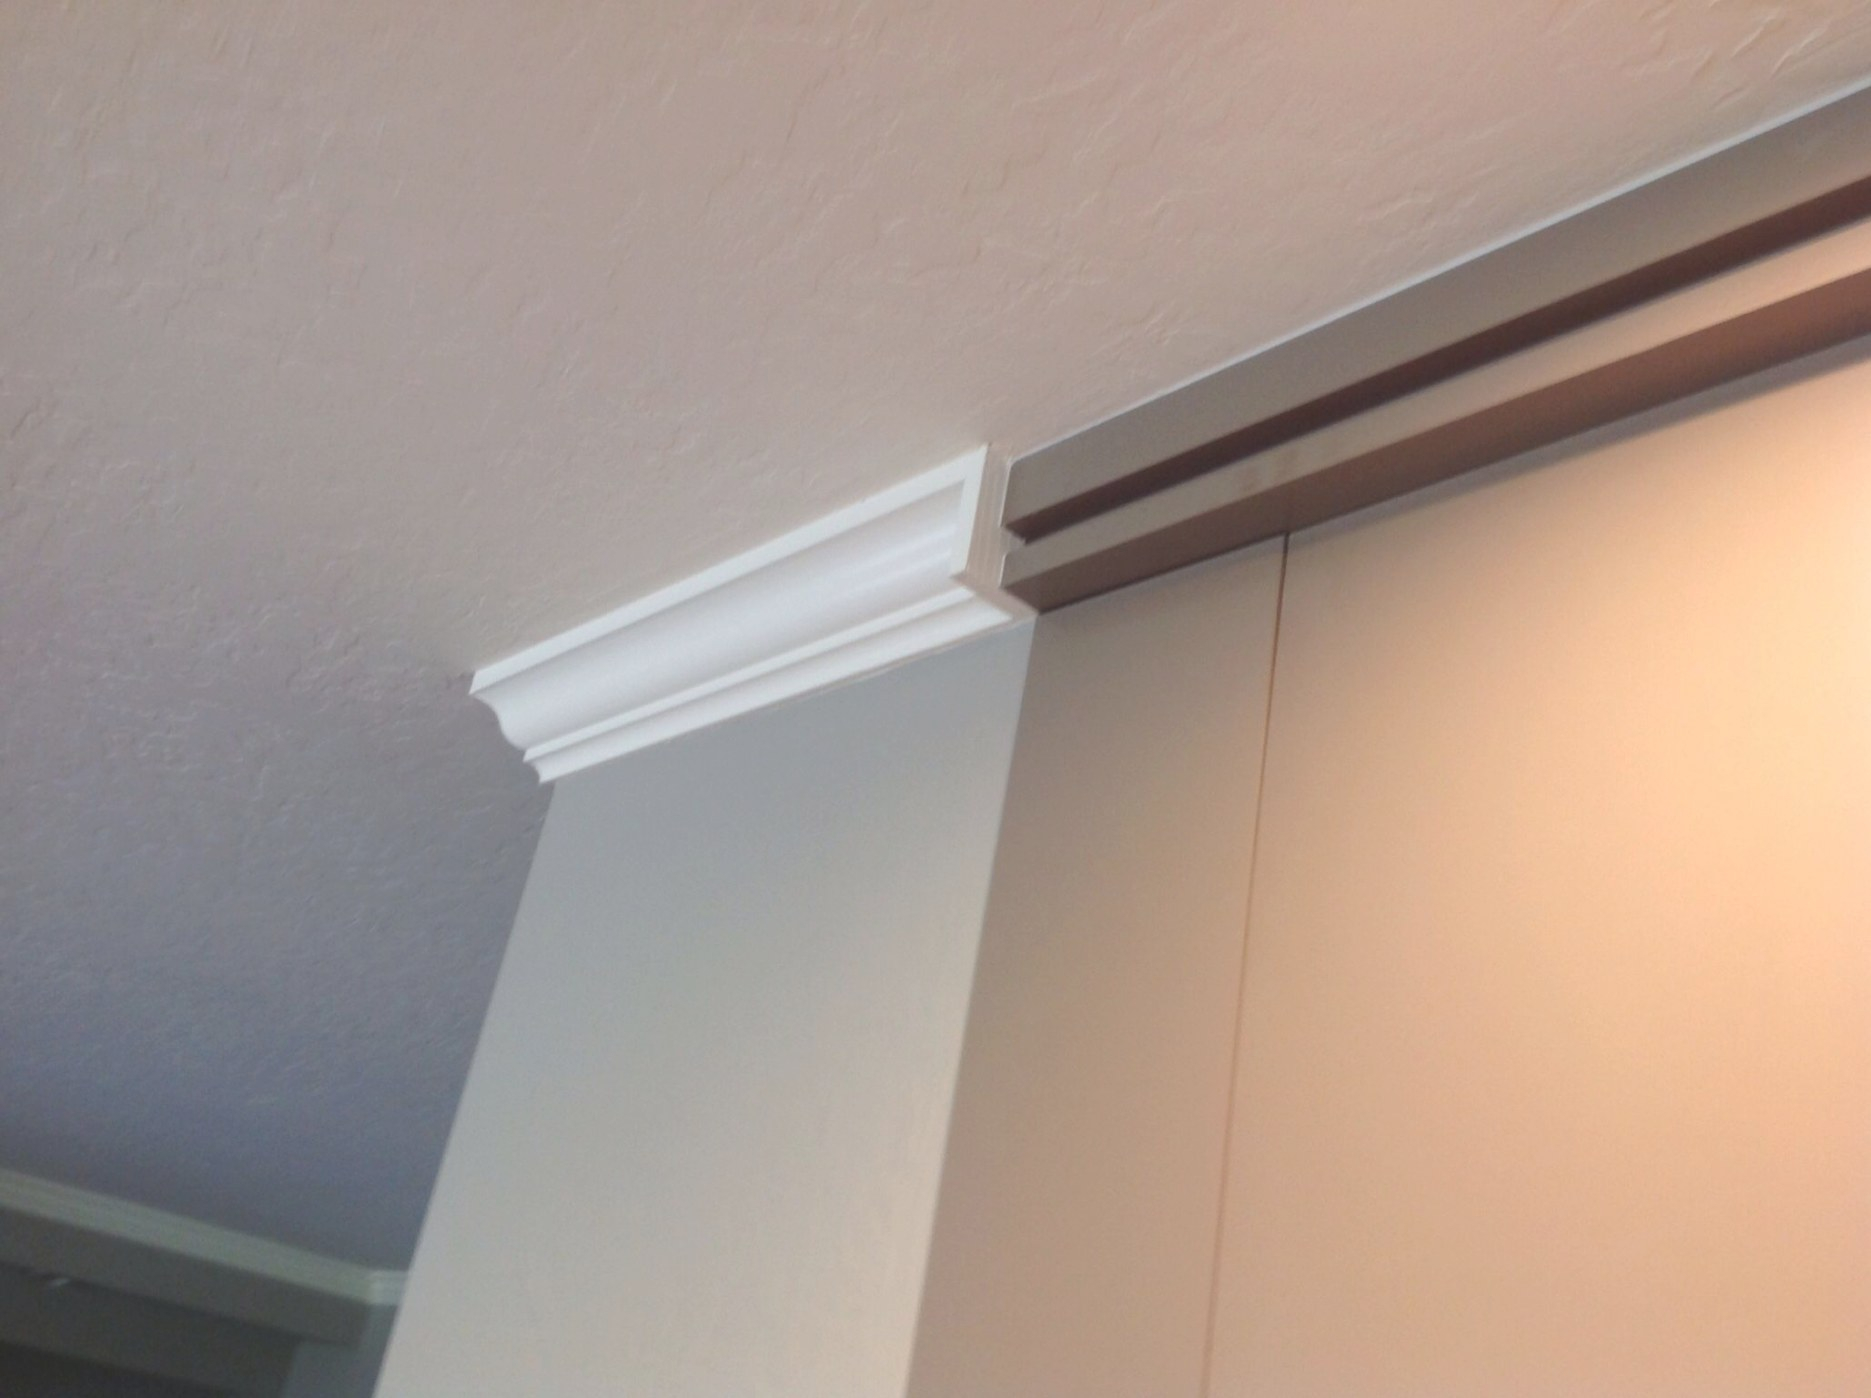 Blynth Stop Where Crown Molding Meets New Trim Detail Above intended for What Is Crown Molding